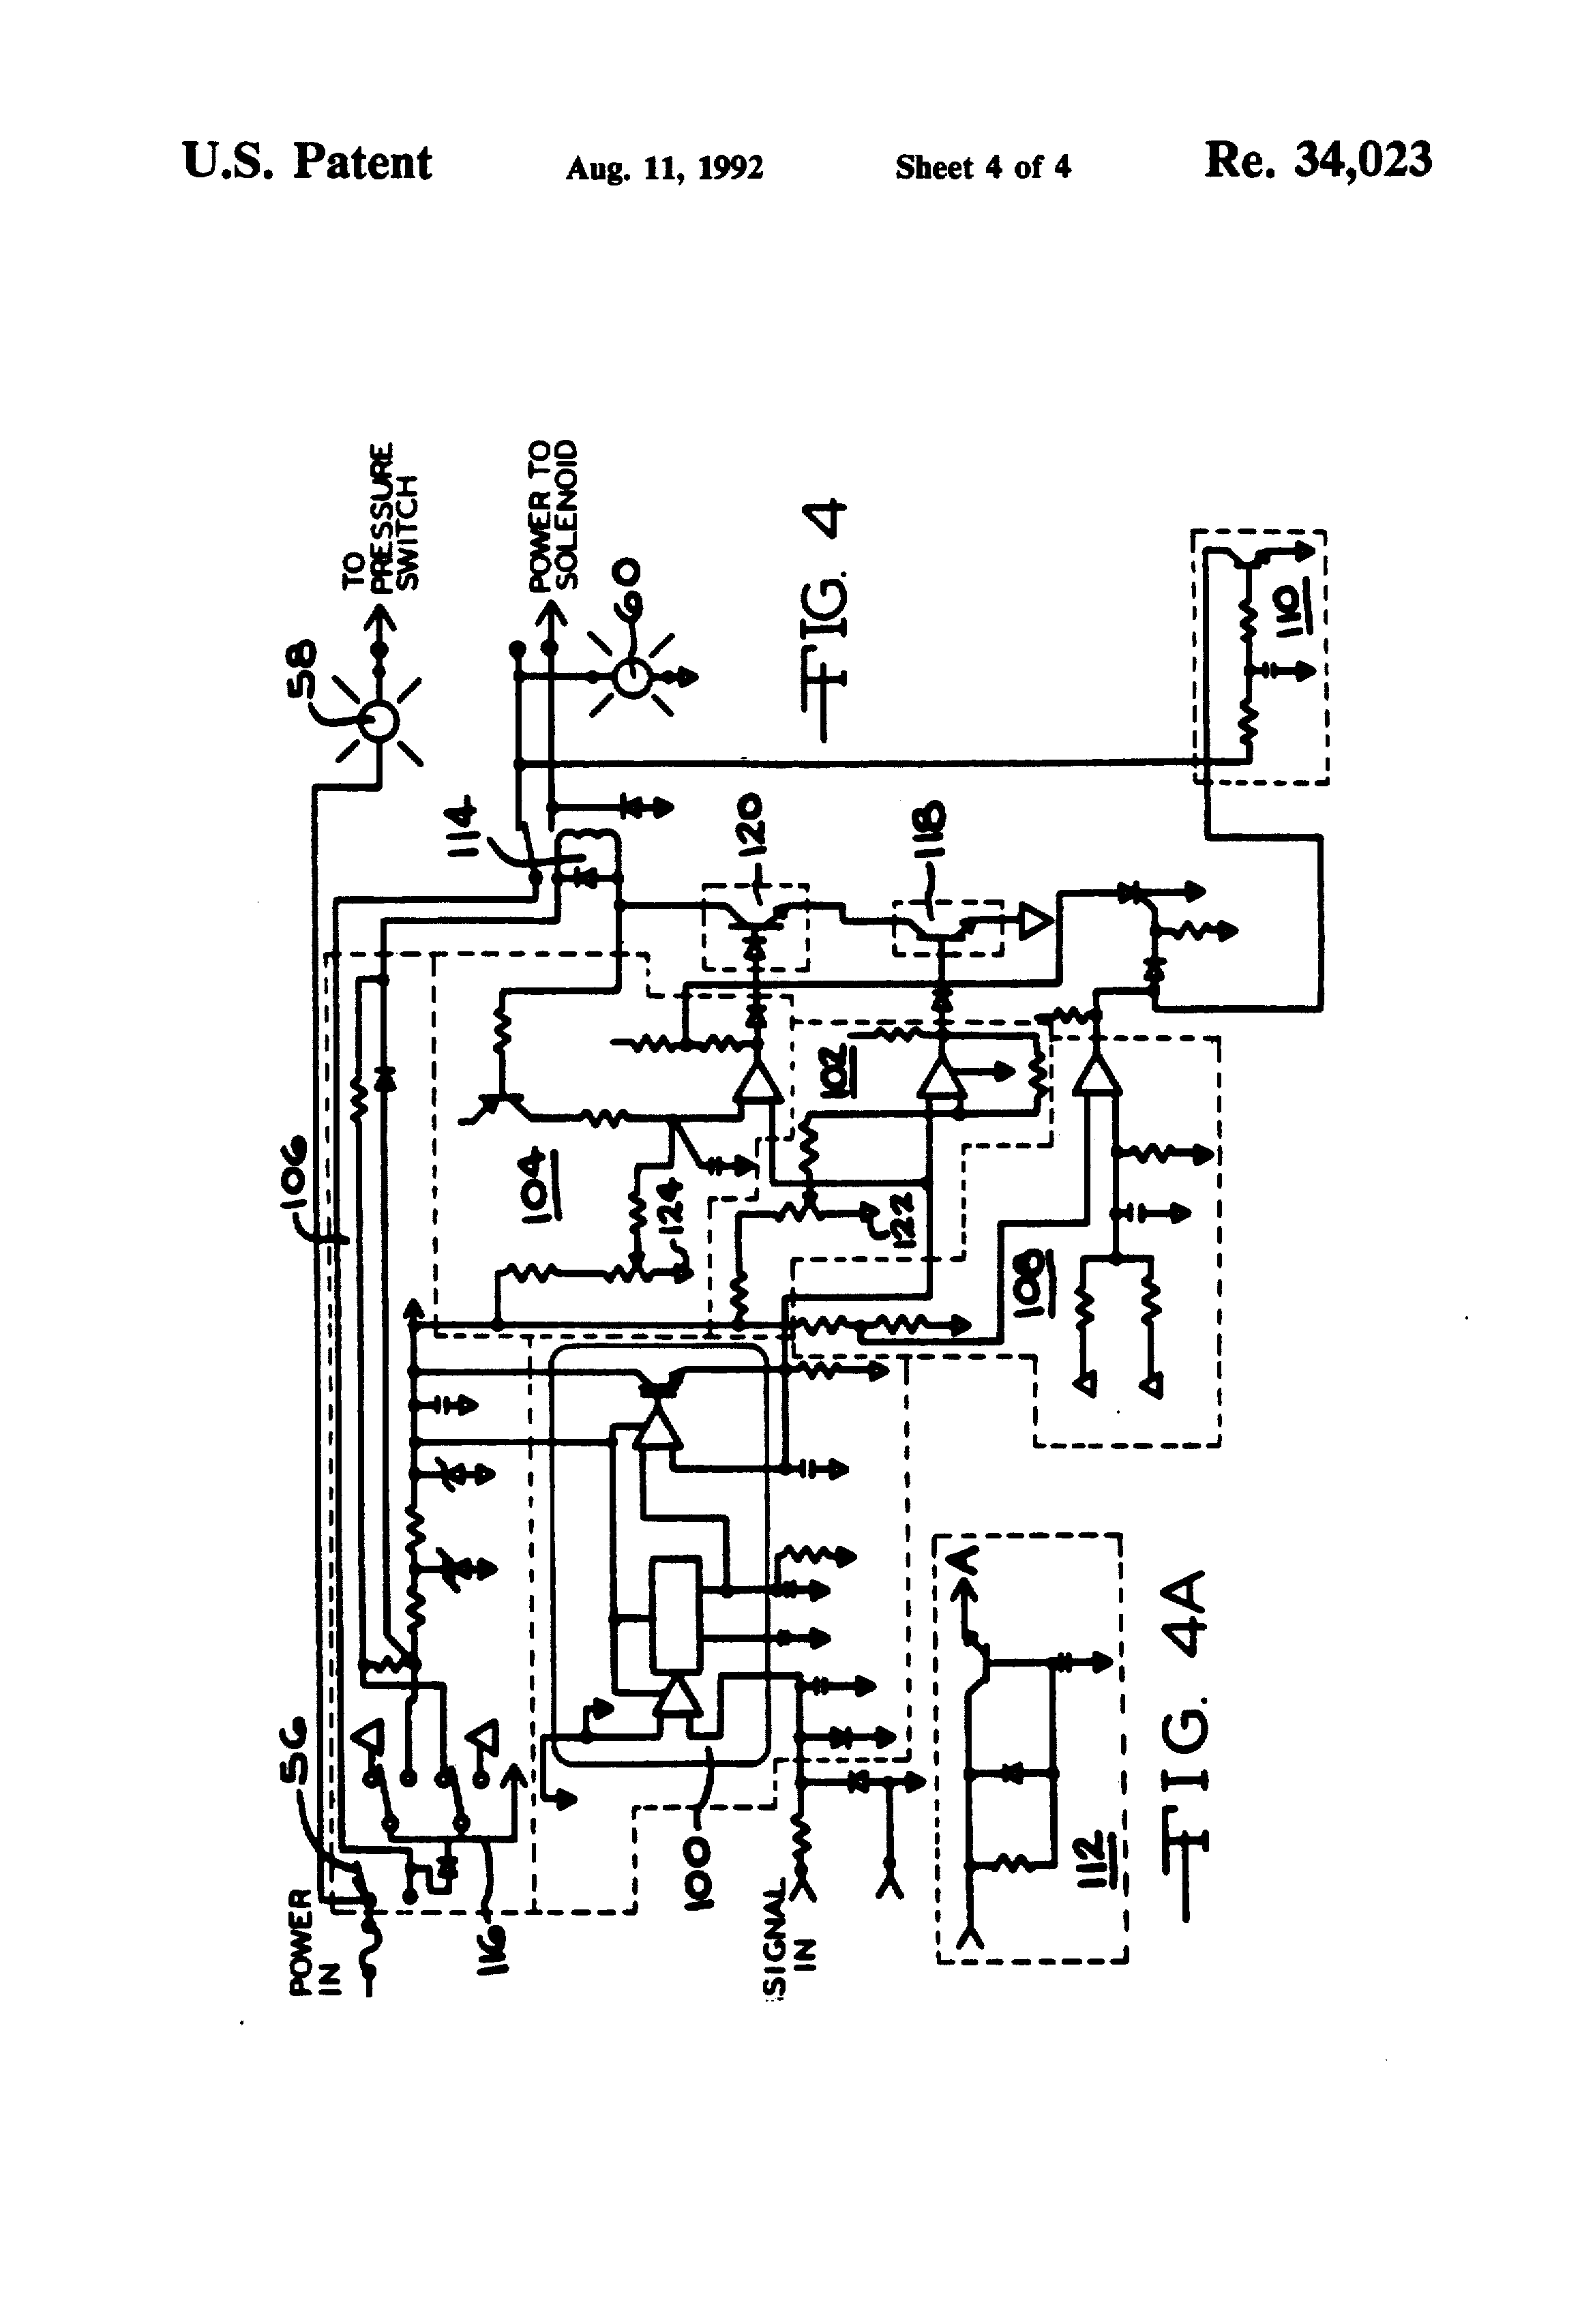 USRE34023 5 muncie pto wiring diagram muncie pto valve \u2022 wiring diagrams j chelsea pto wiring diagram at alyssarenee.co